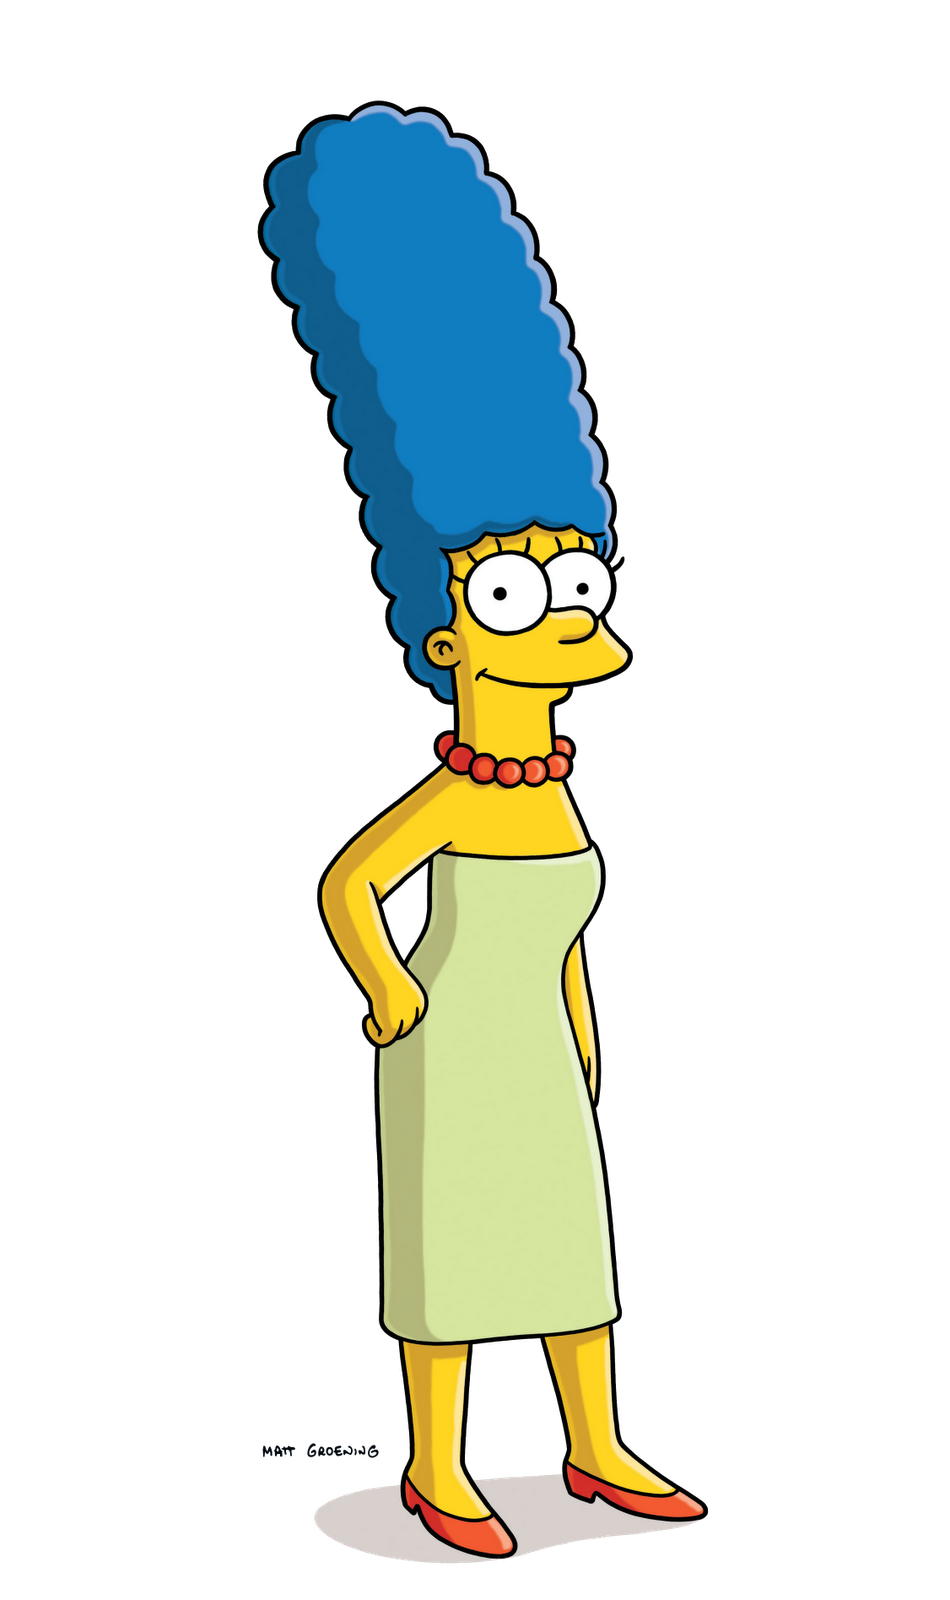 Barney Simpson Porn simpsons marge png, picture #839869 simpsons marge png